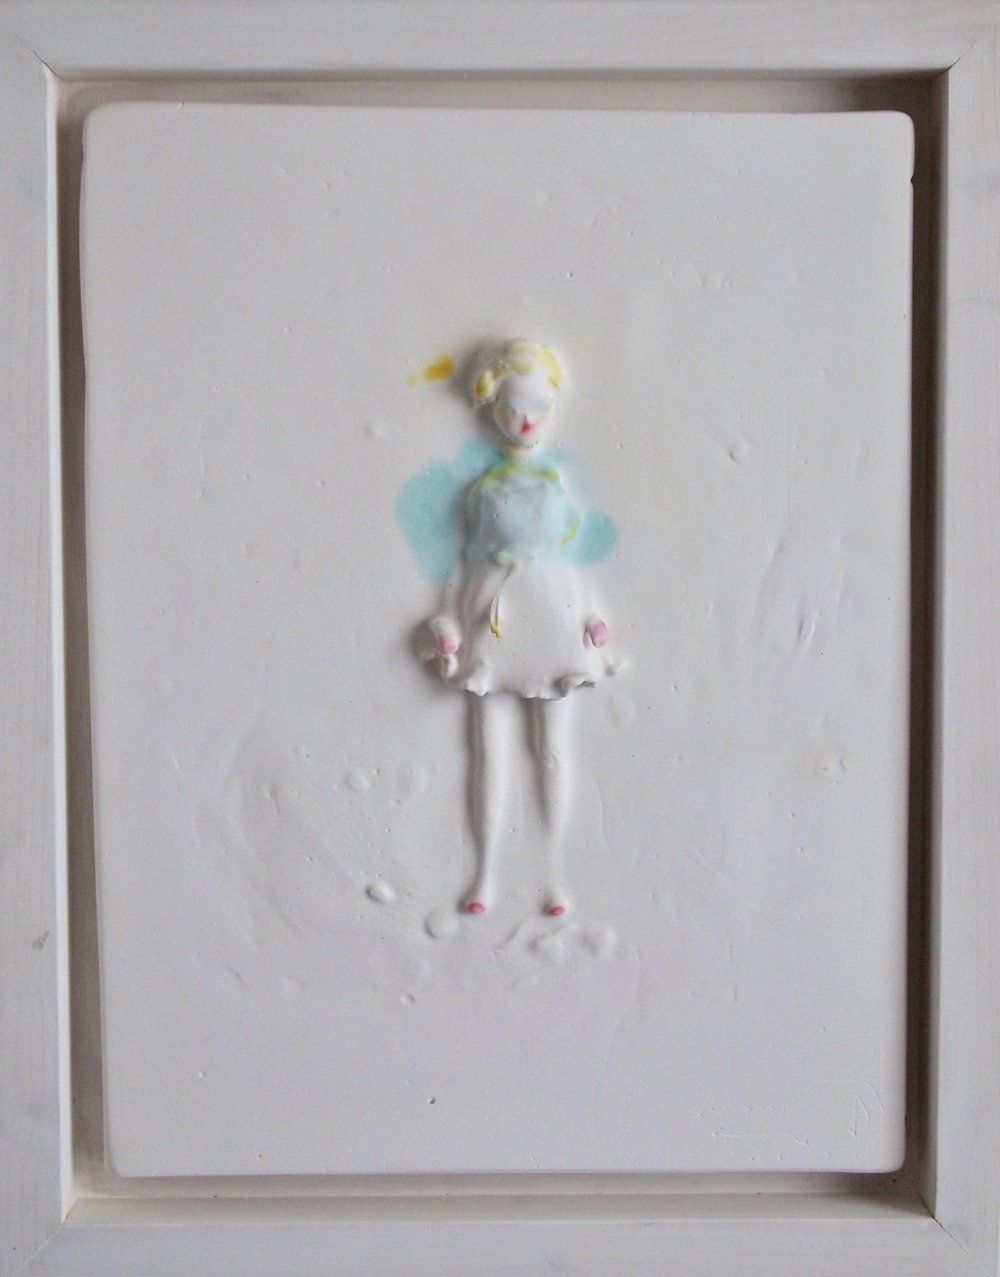 <b>samantha</b><br>plaster, found object, inks<br>11 x 9 in.